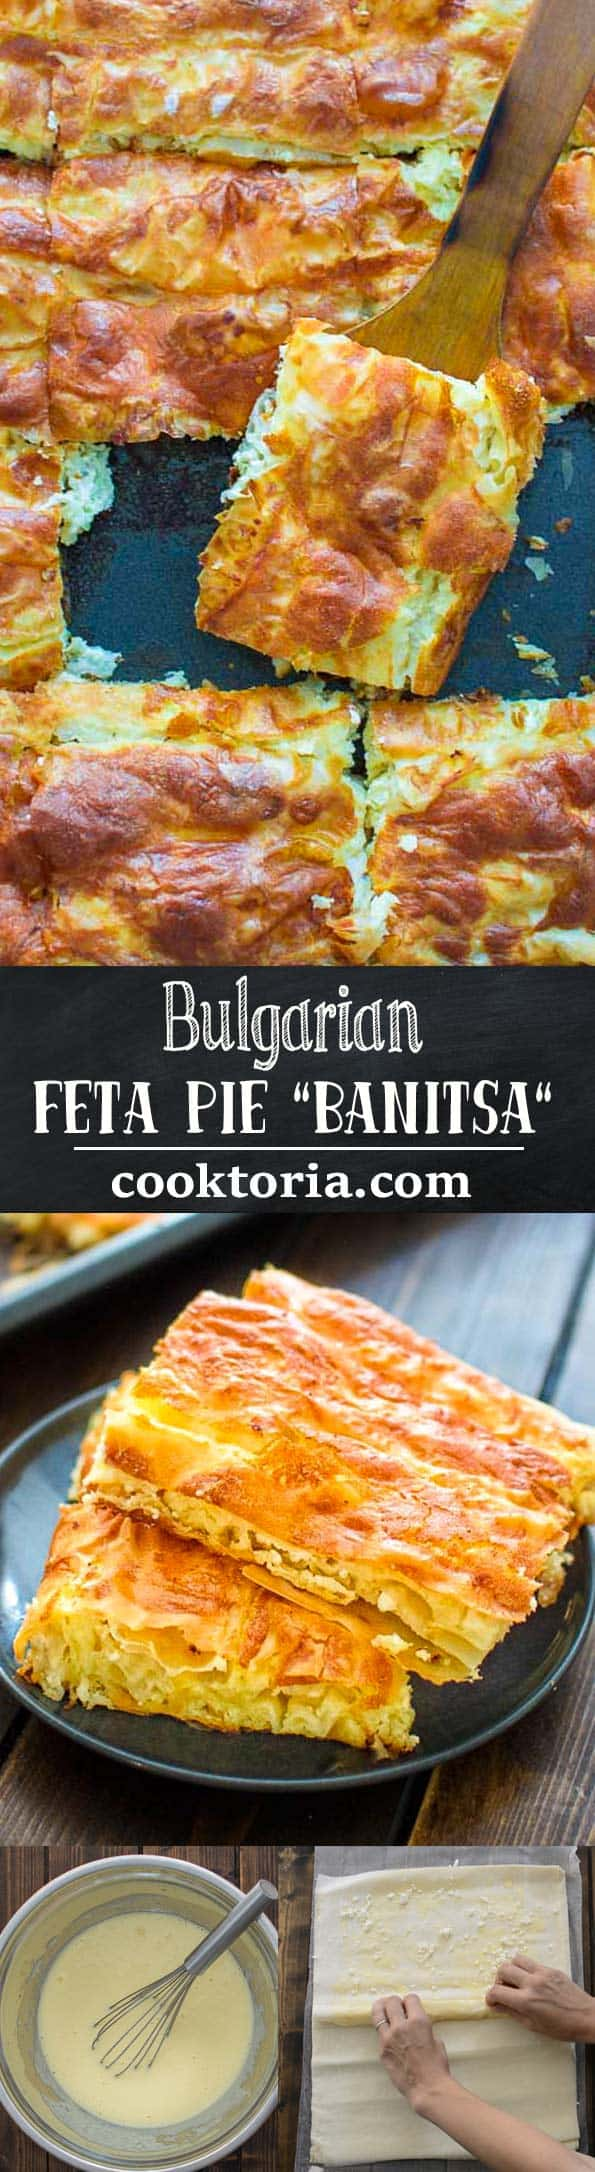 """This deliciousBulgarian Feta Pie """"Banitsa"""" is a true gem of Balkan cuisine. Made with layers of filo dough, crumbled feta, and eggs, it makes a perfect breakfast or mid-day snack."""